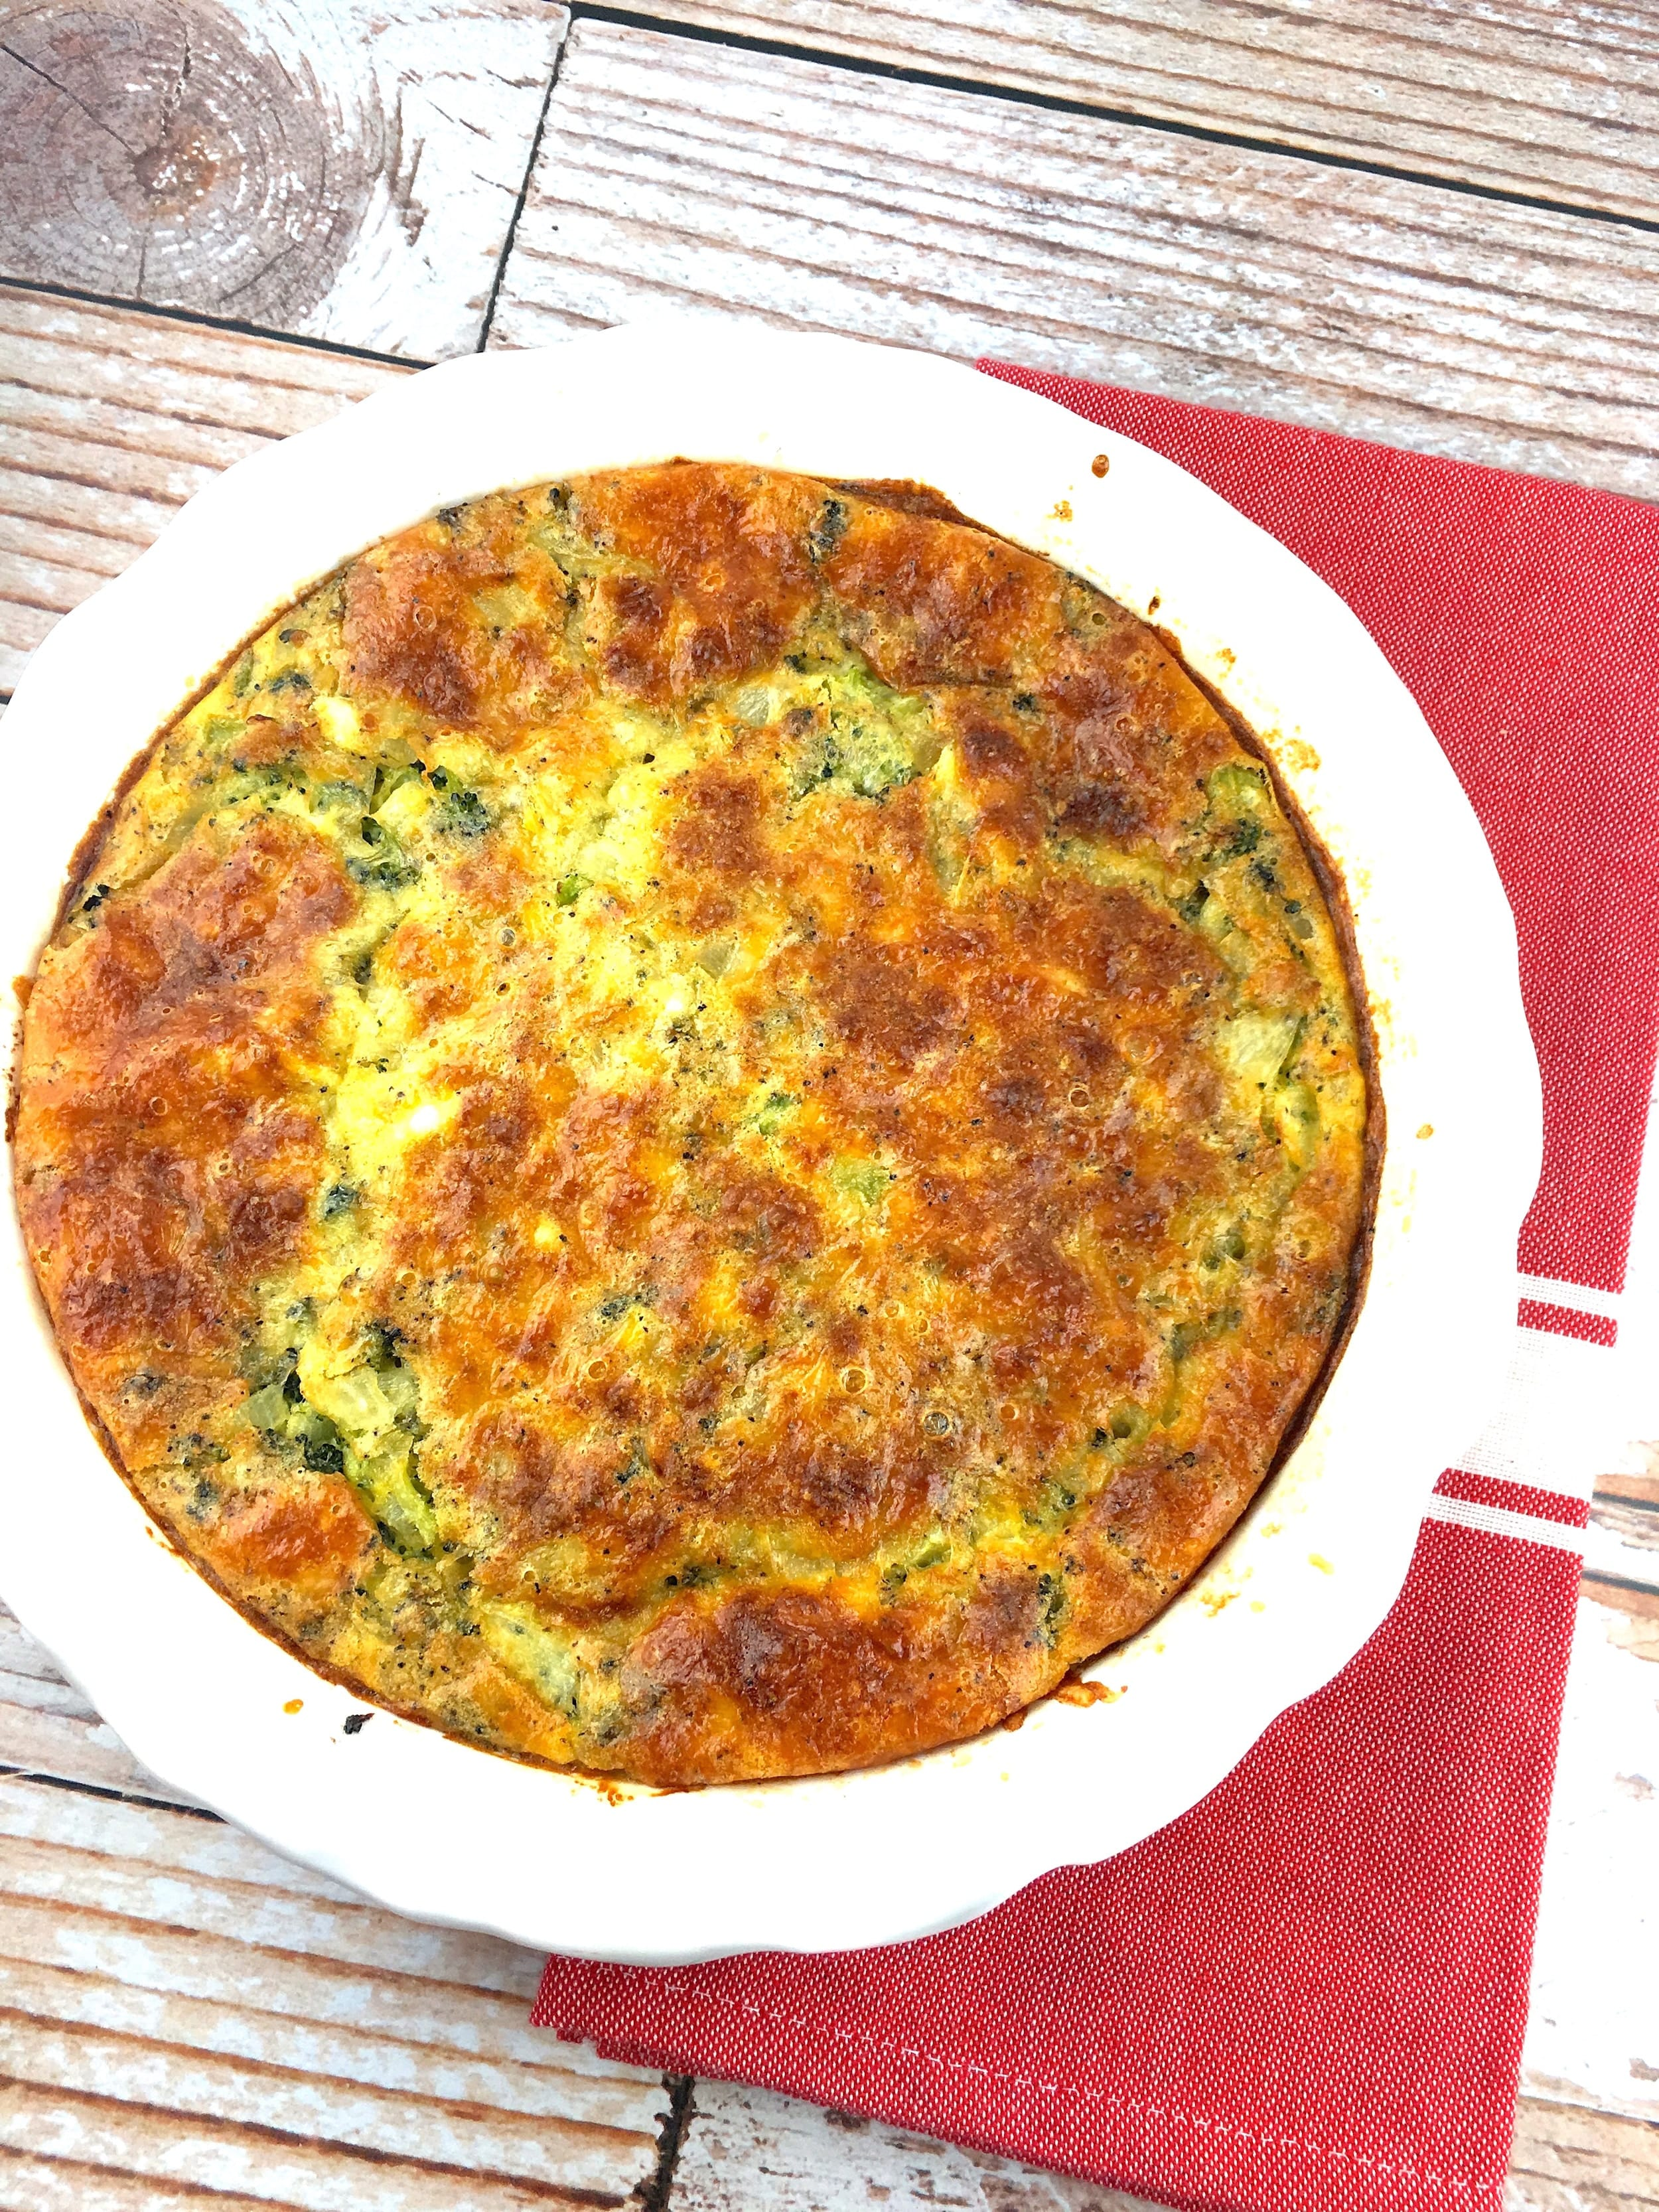 Broccoli and Cheddar Crustless Quiche - 4 Smart Points - LaaLoosh